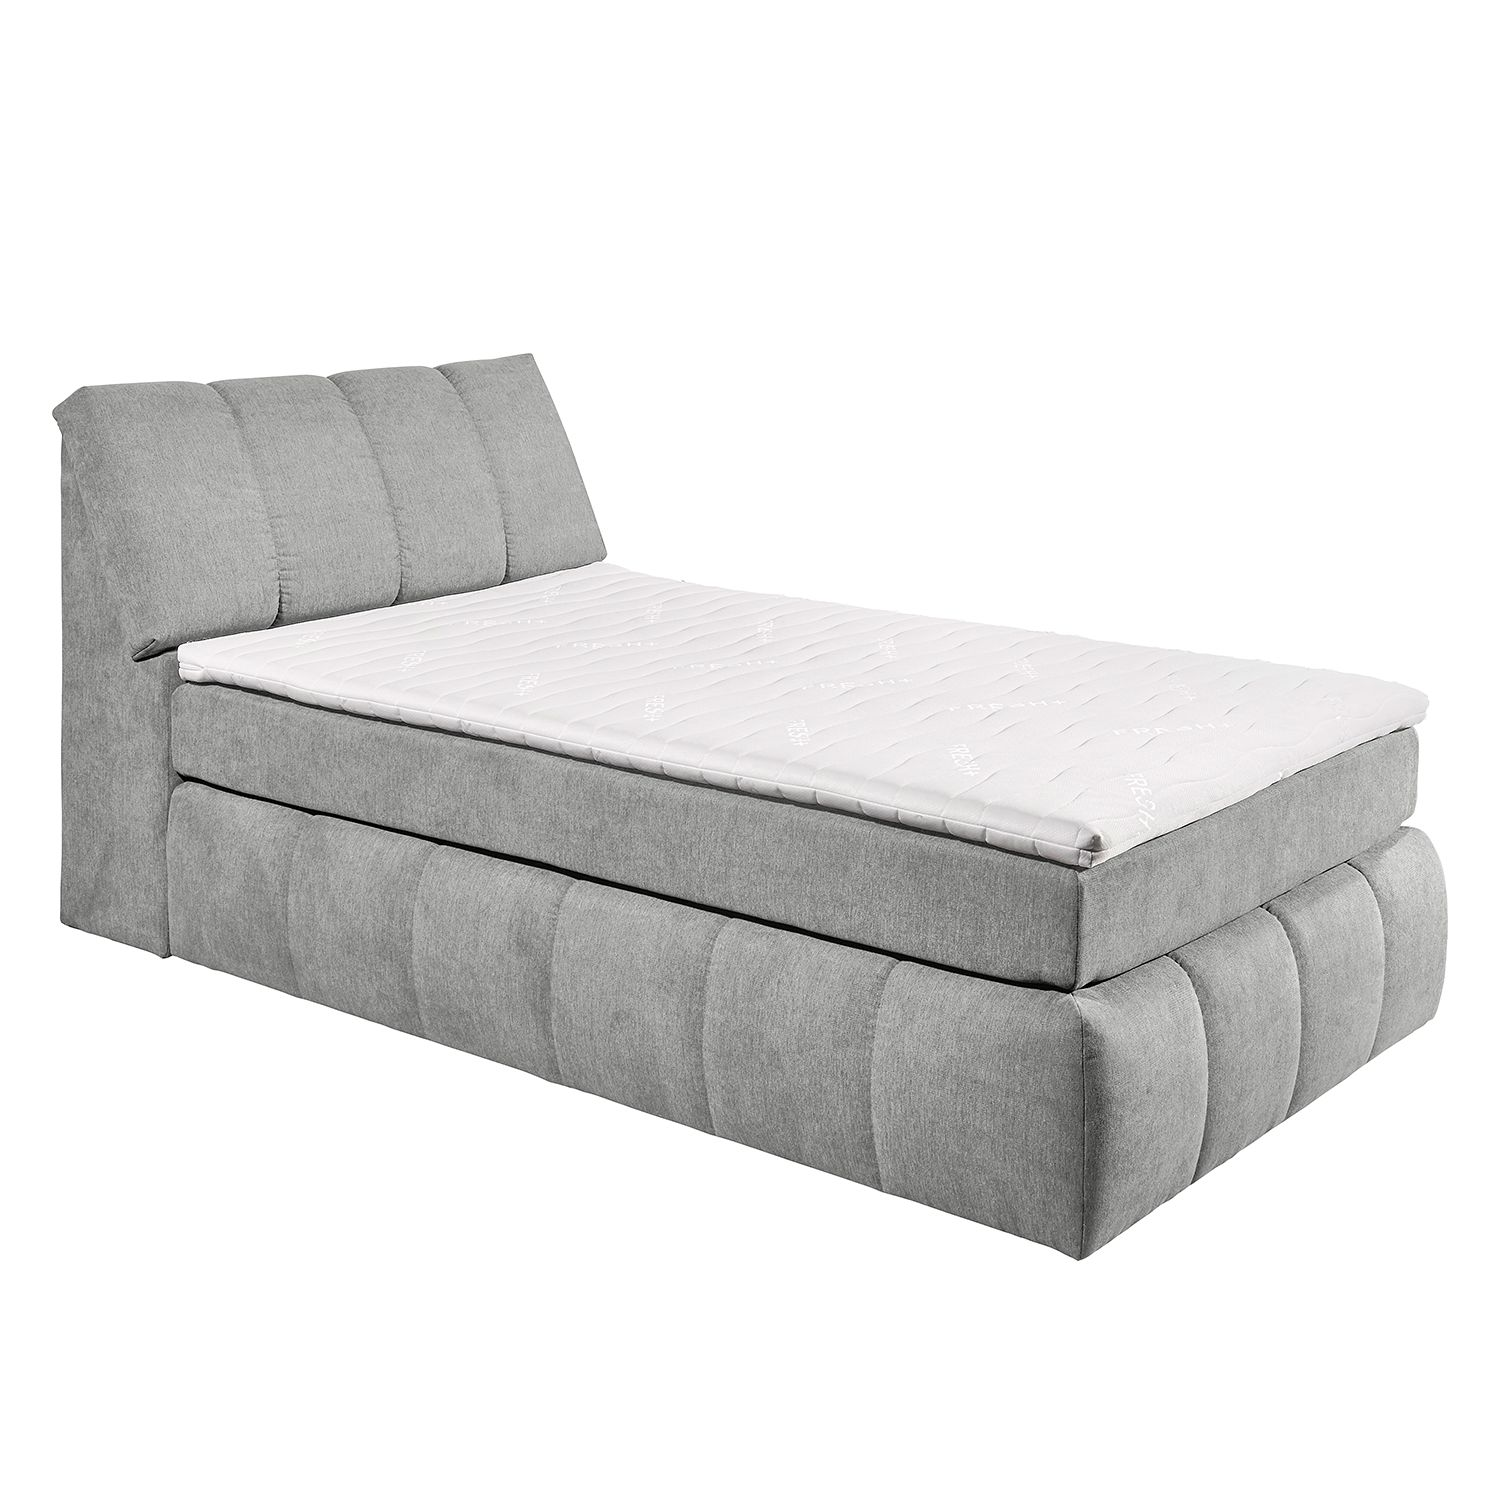 lit boxspring fenor avec coffre de lit tissu gris. Black Bedroom Furniture Sets. Home Design Ideas